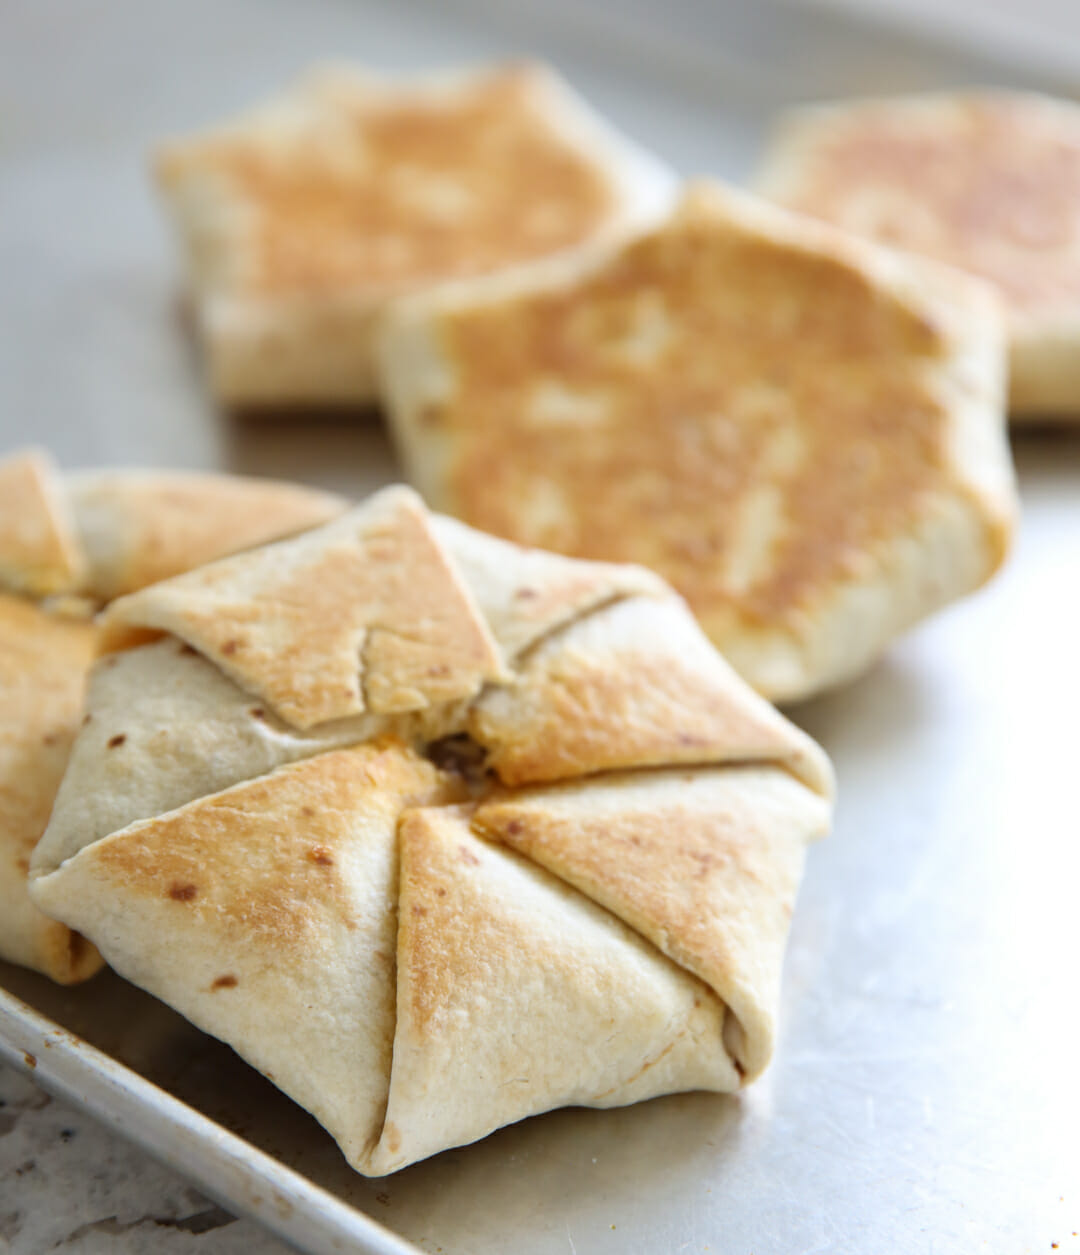 Baked Crunch Wraps